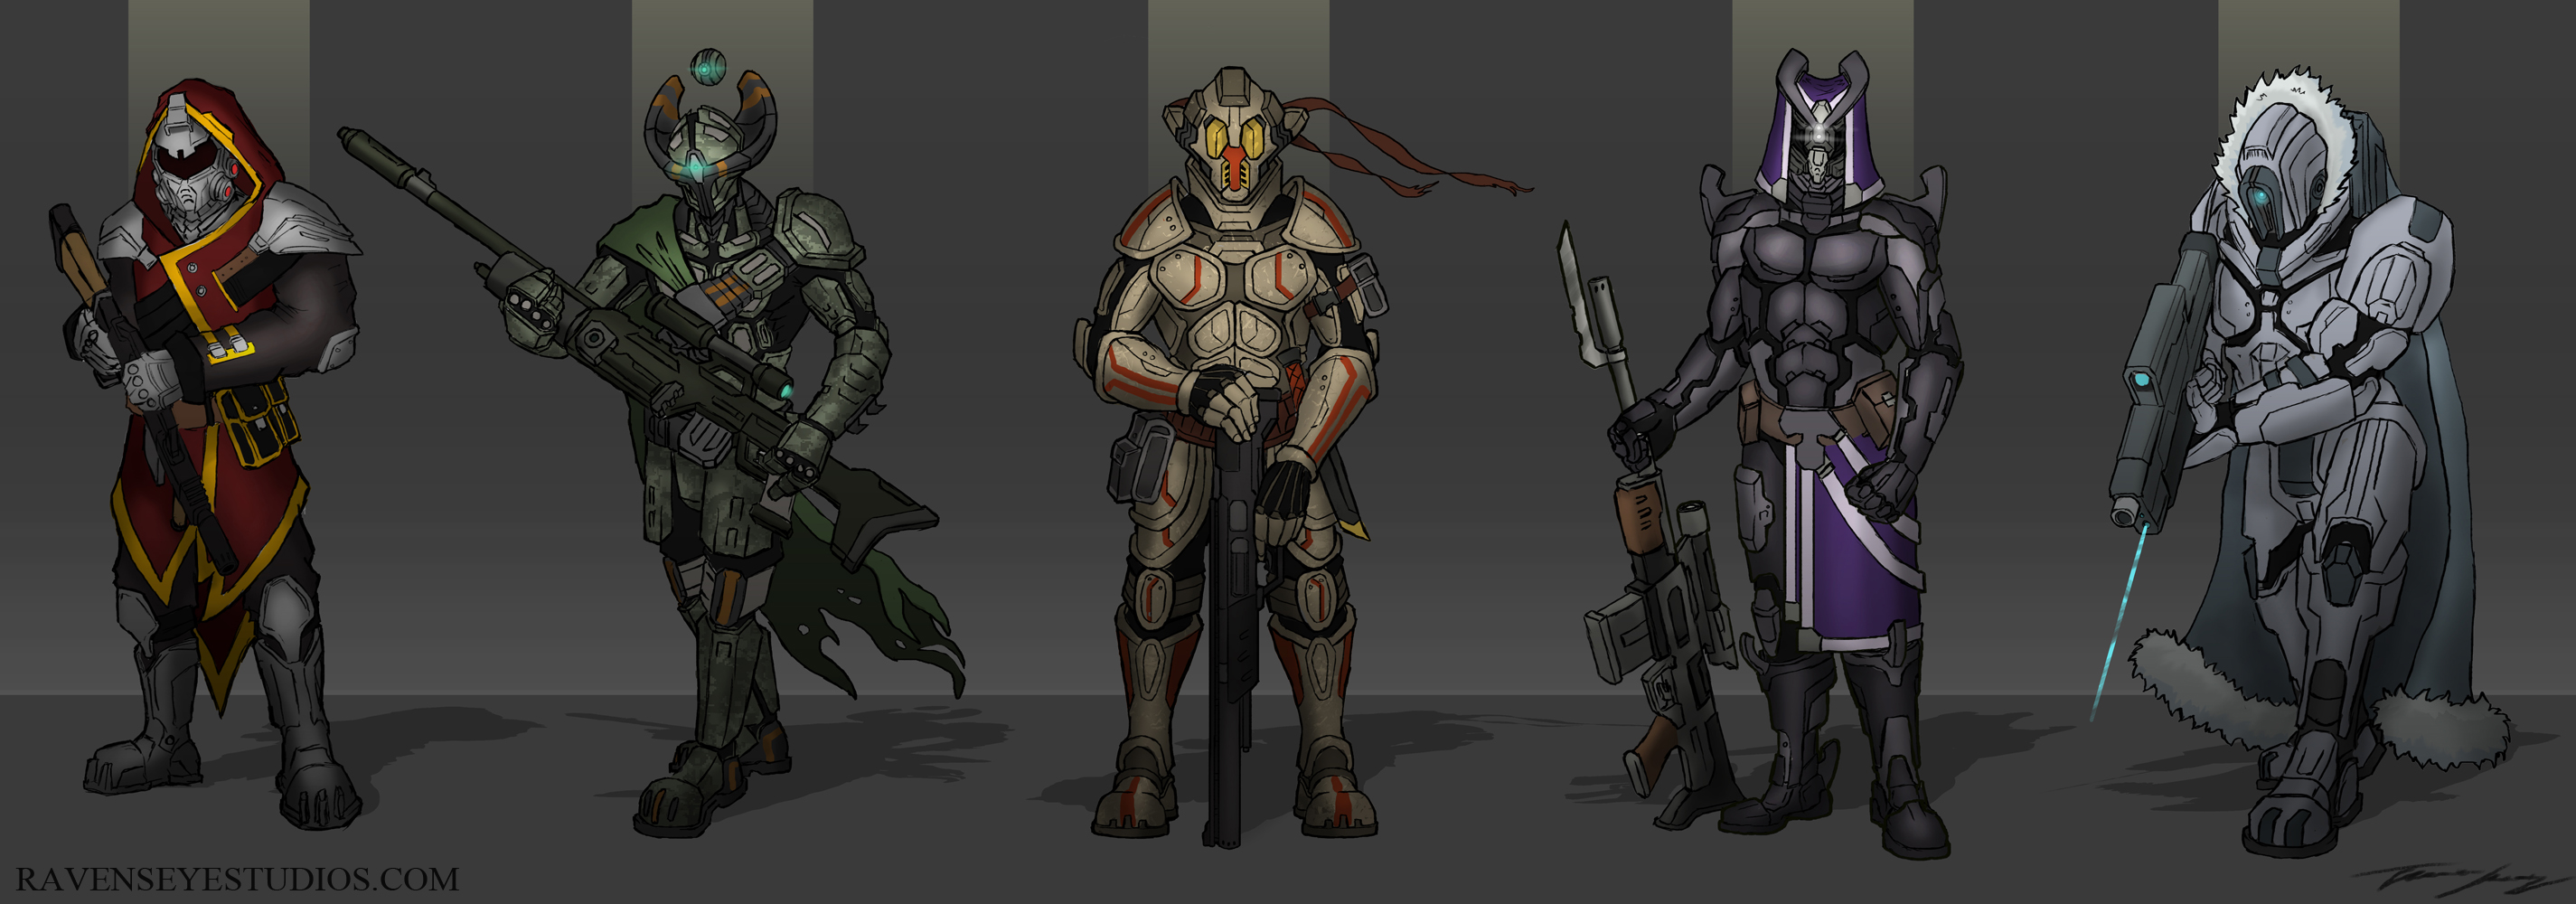 Sci-fi-soldiers-concept-bounty-hunters-art-concept-art-design-roughs